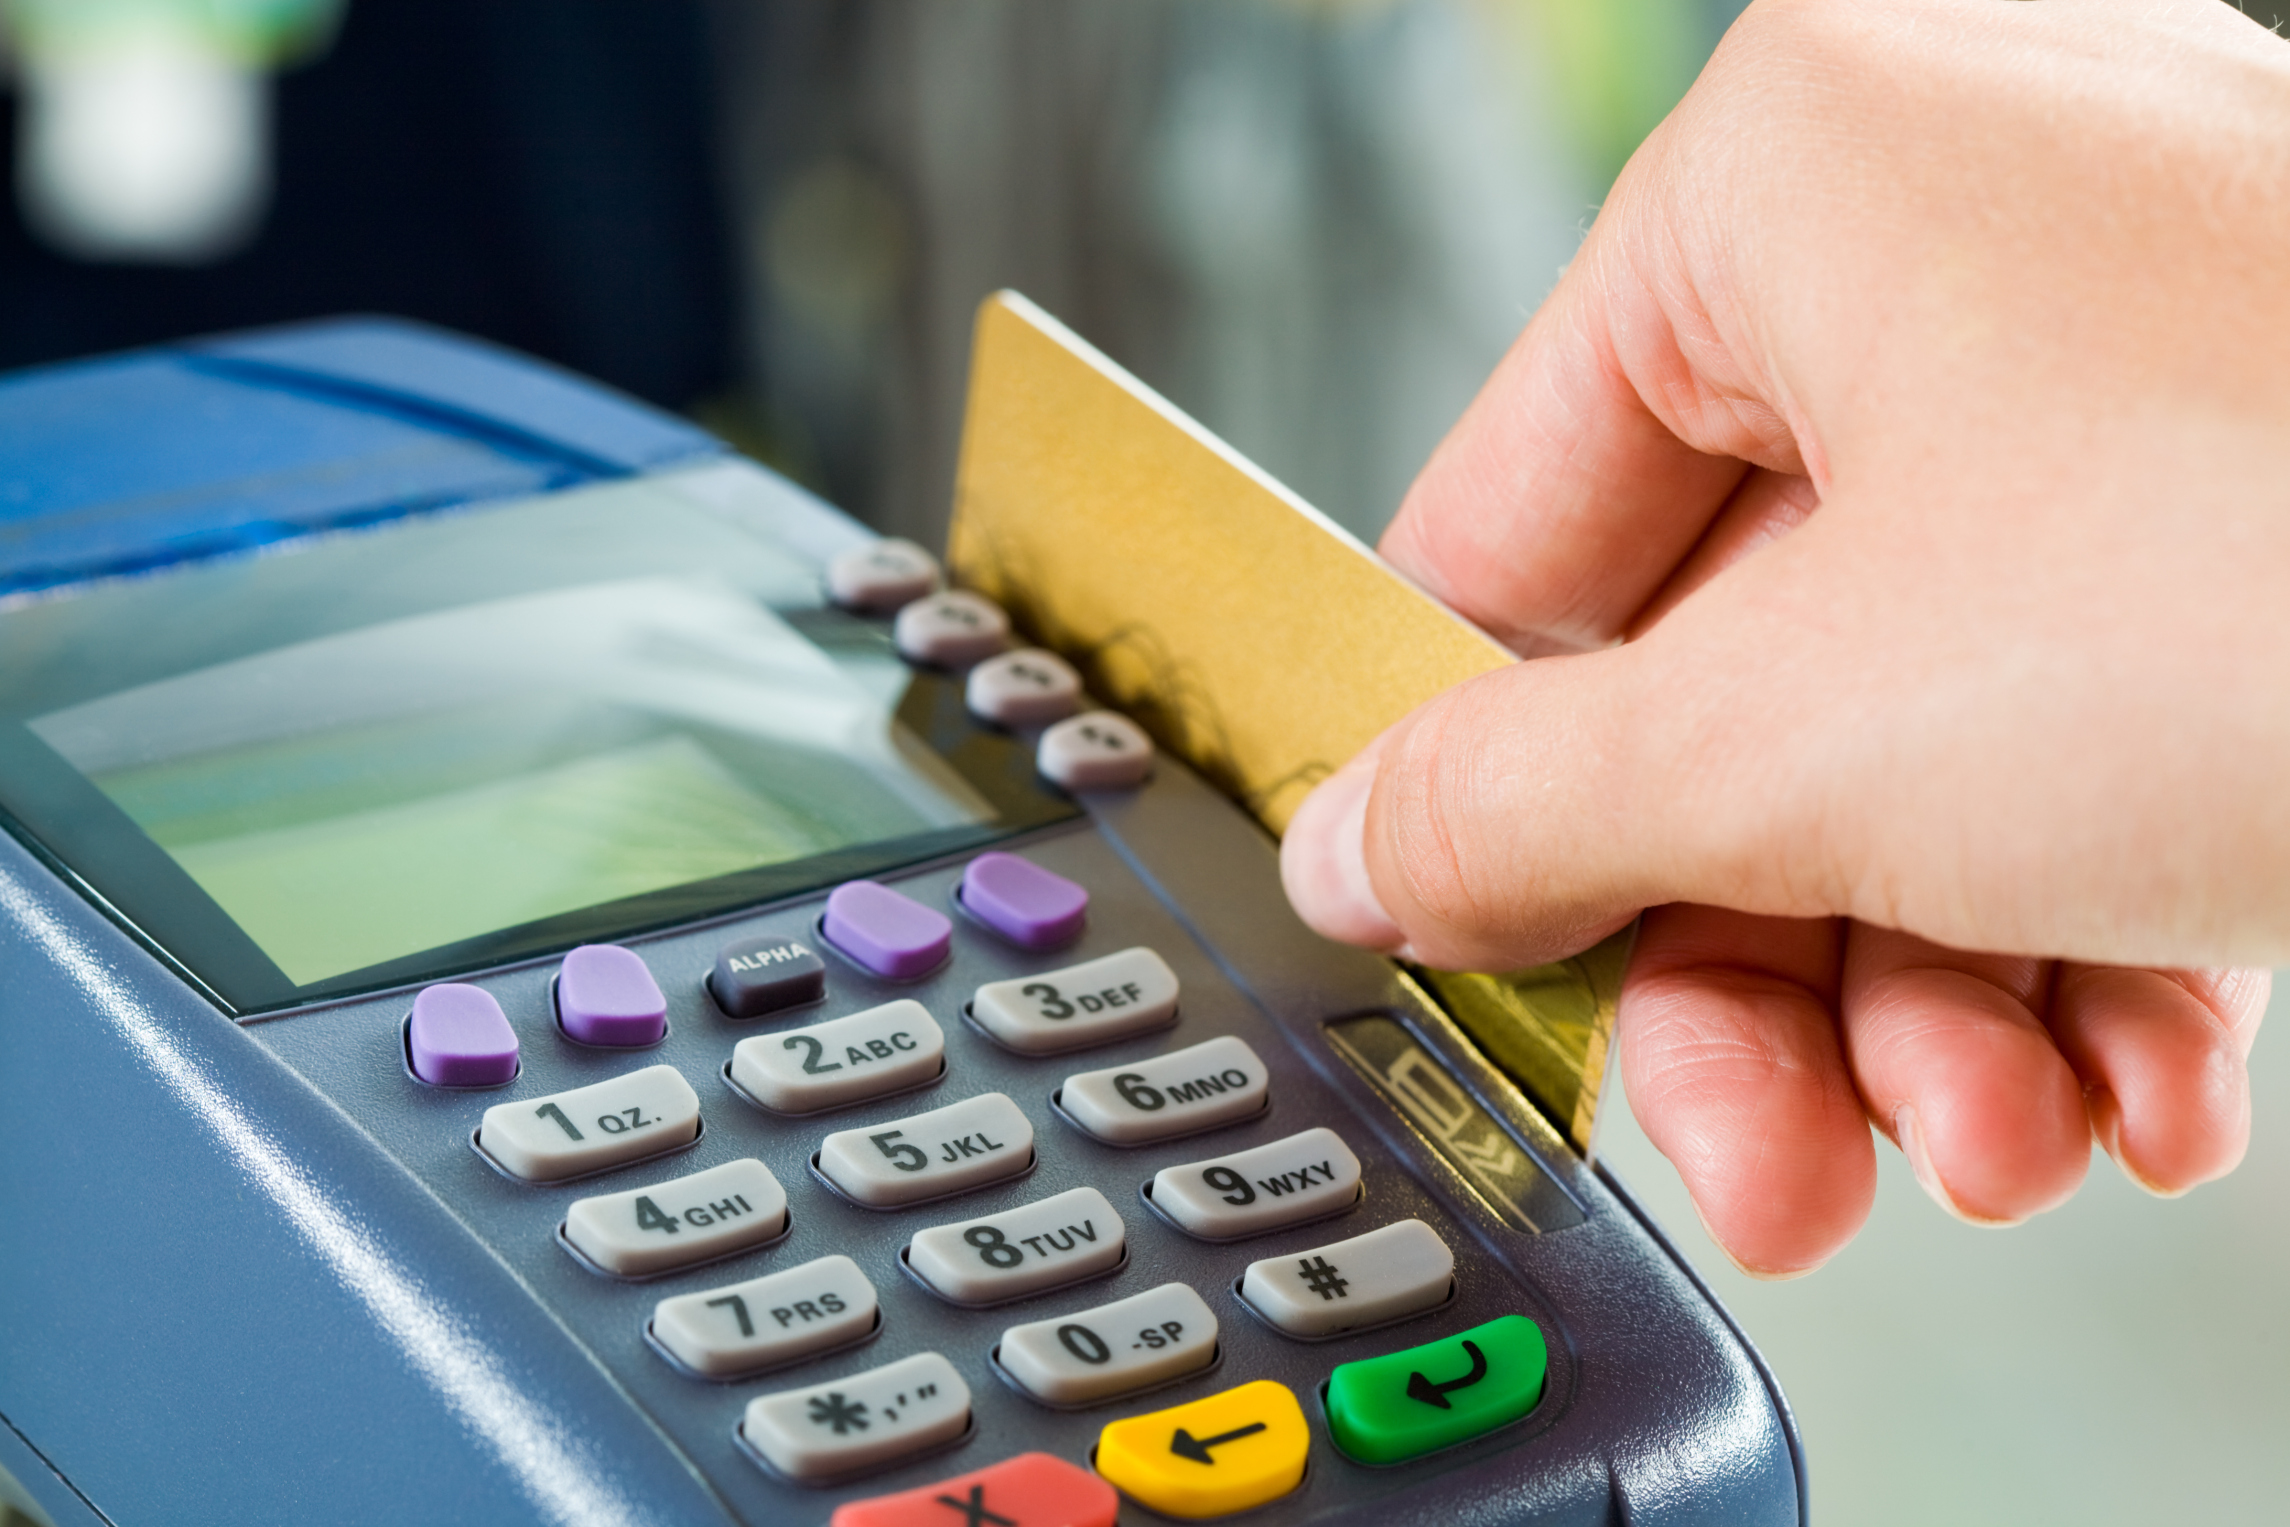 How To Use A Credit Card Machine To Schedule A Card